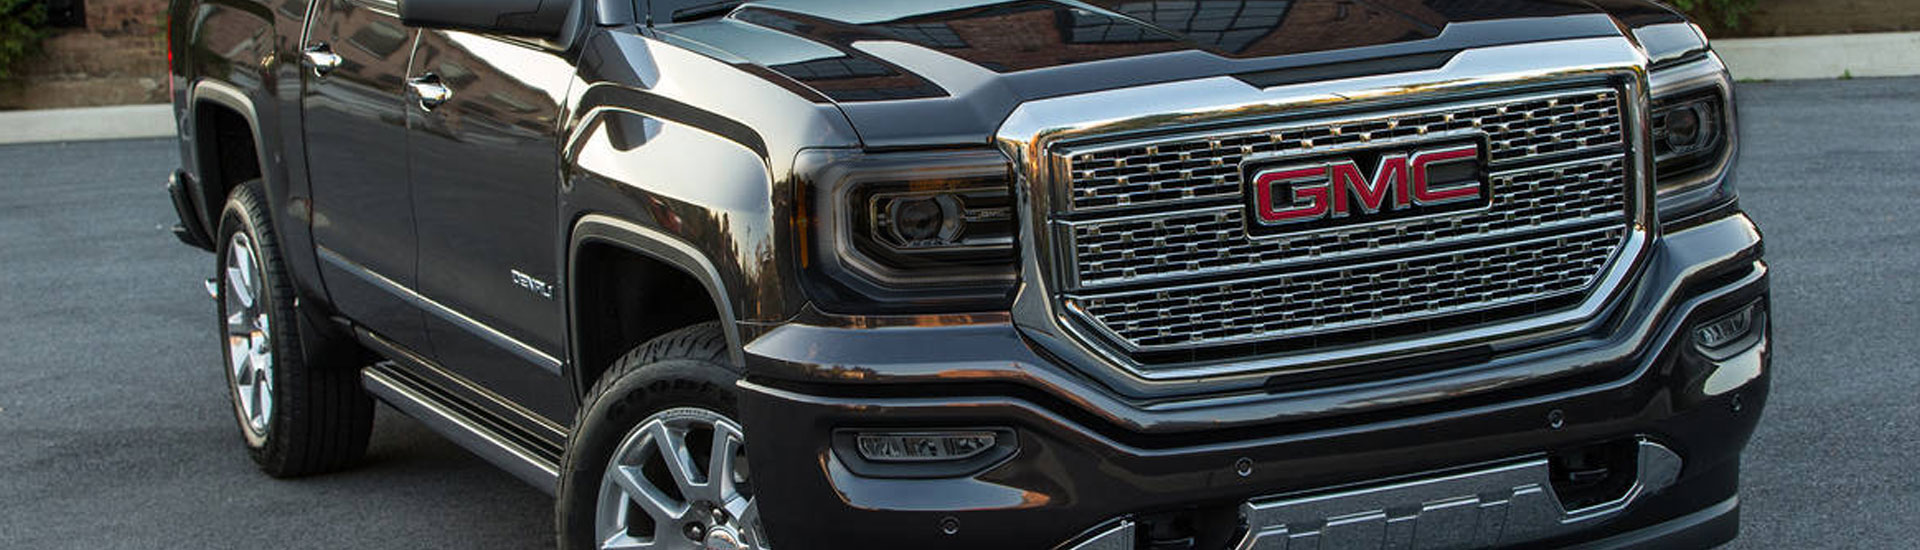 GMC Headlight Tint Covers